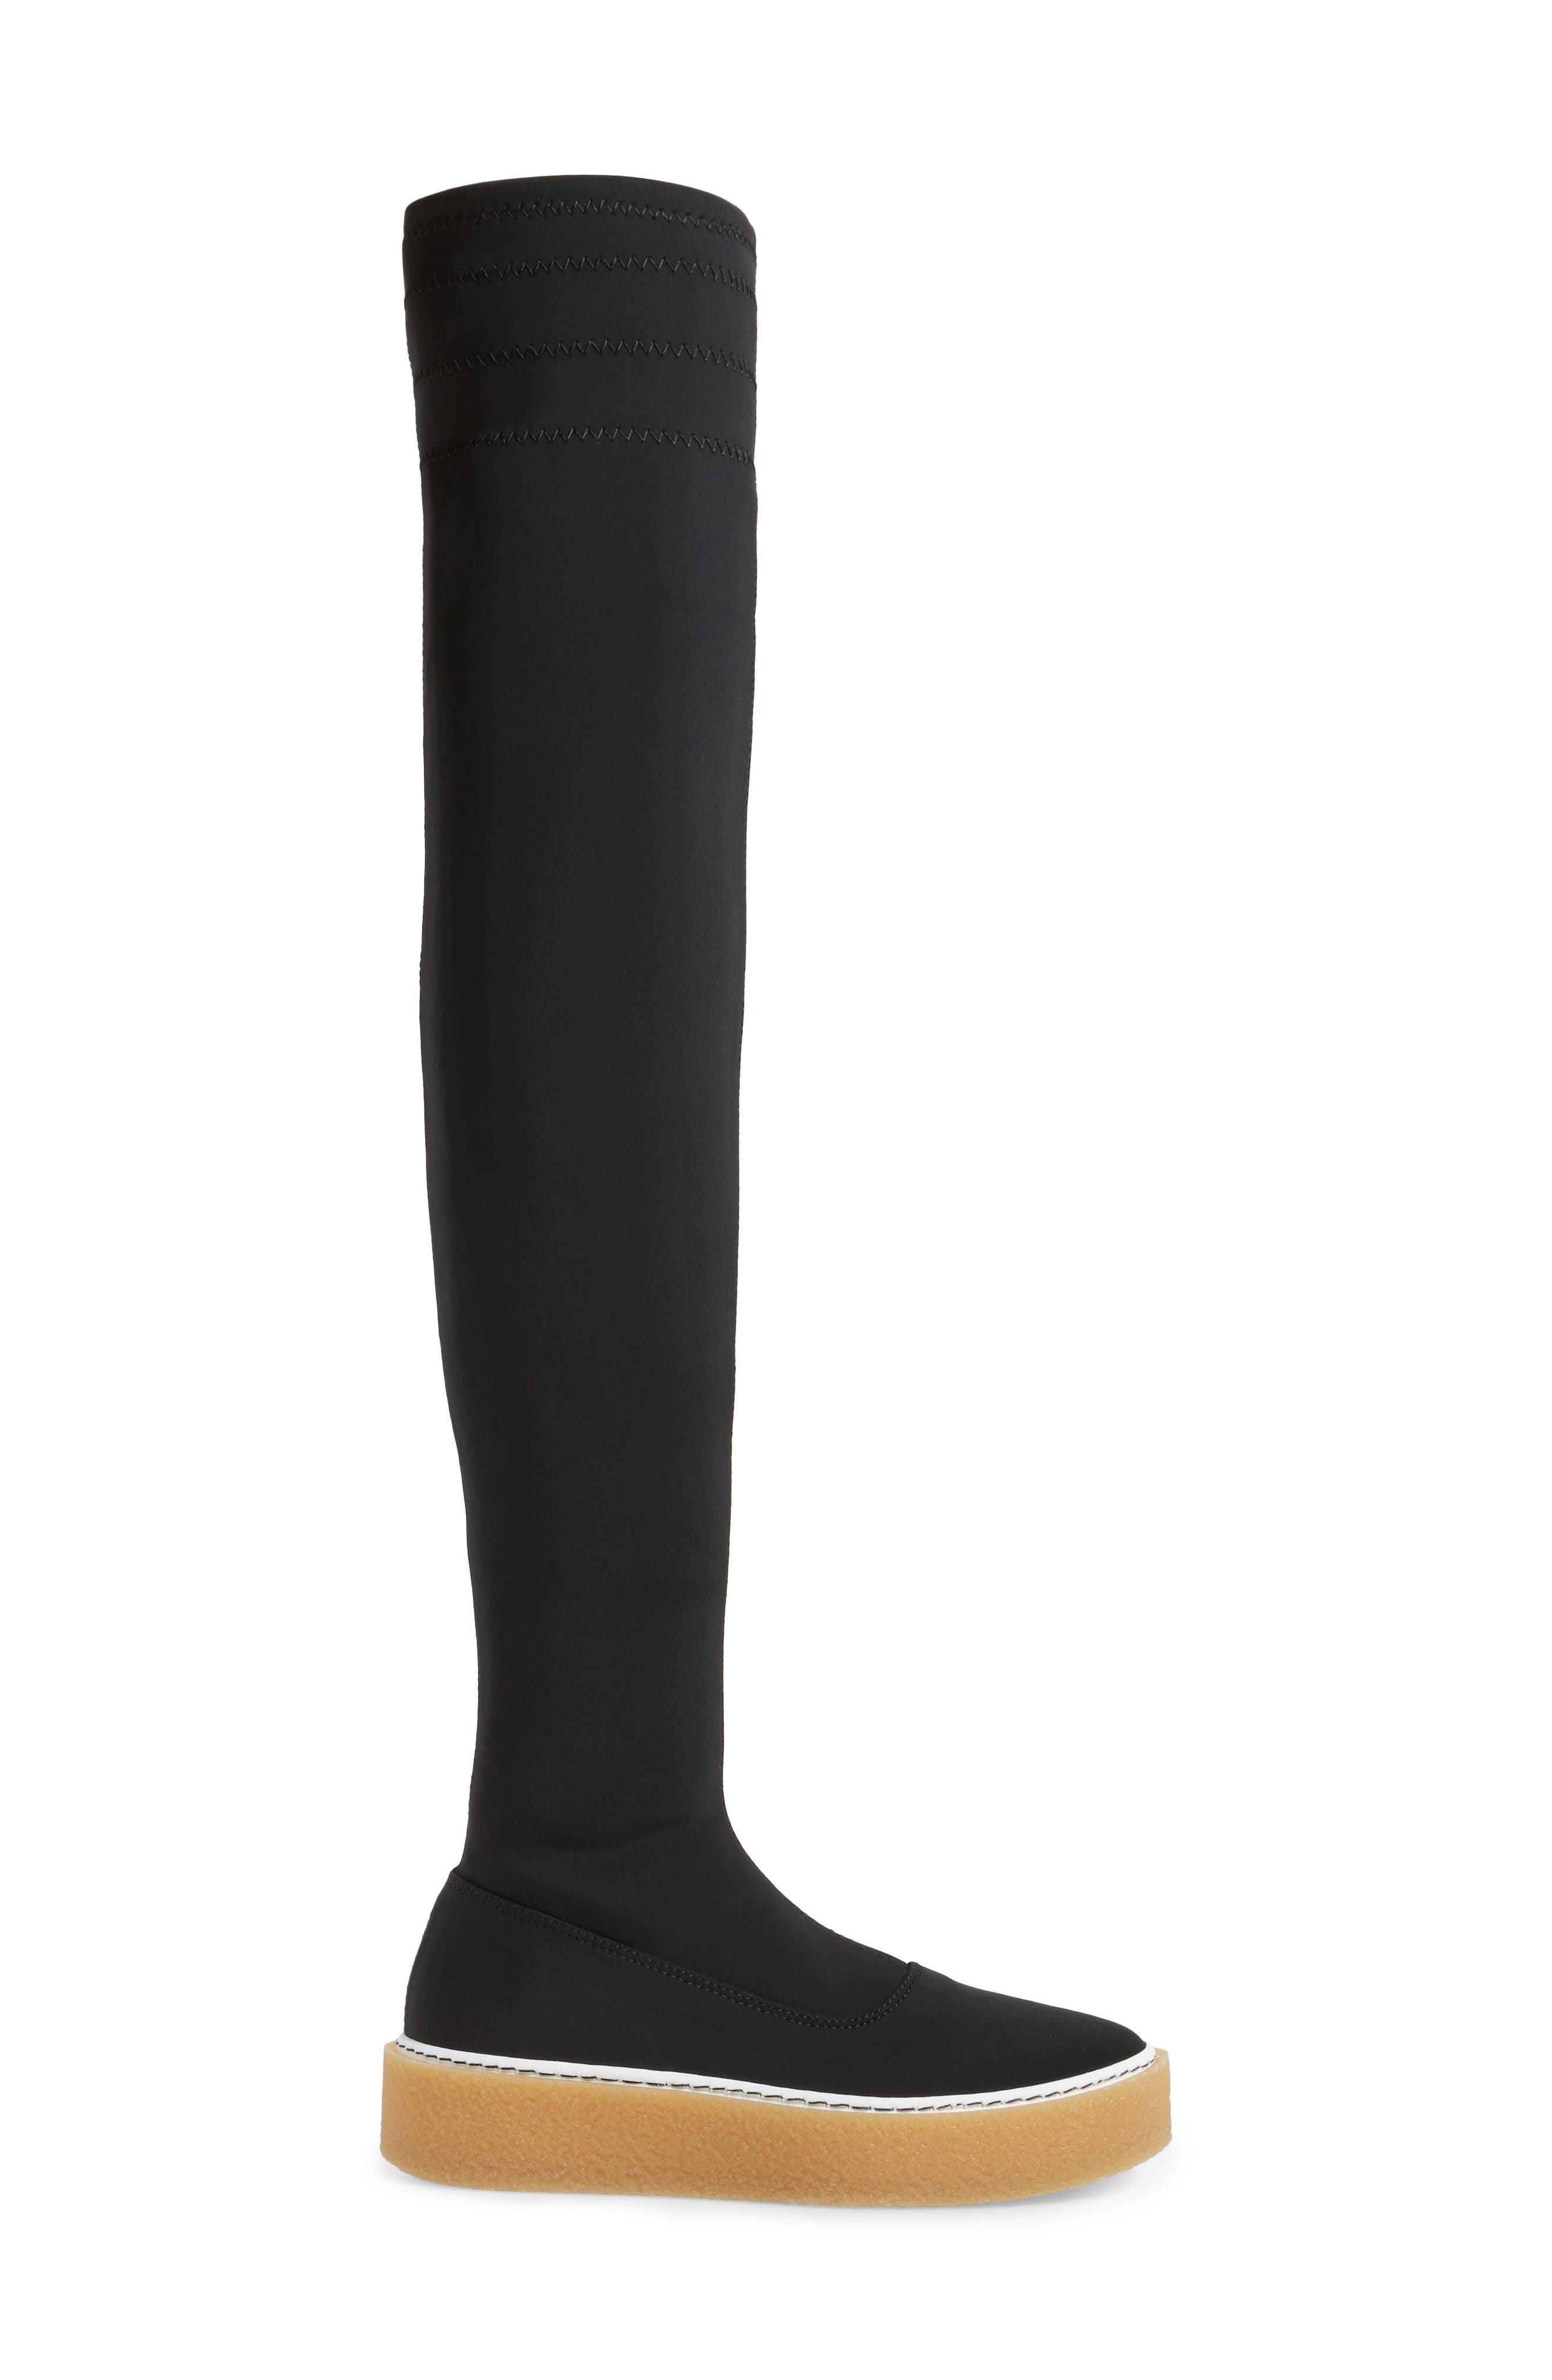 Outer Limits Thigh High Boot,                             Alternate thumbnail 3, color,                             001